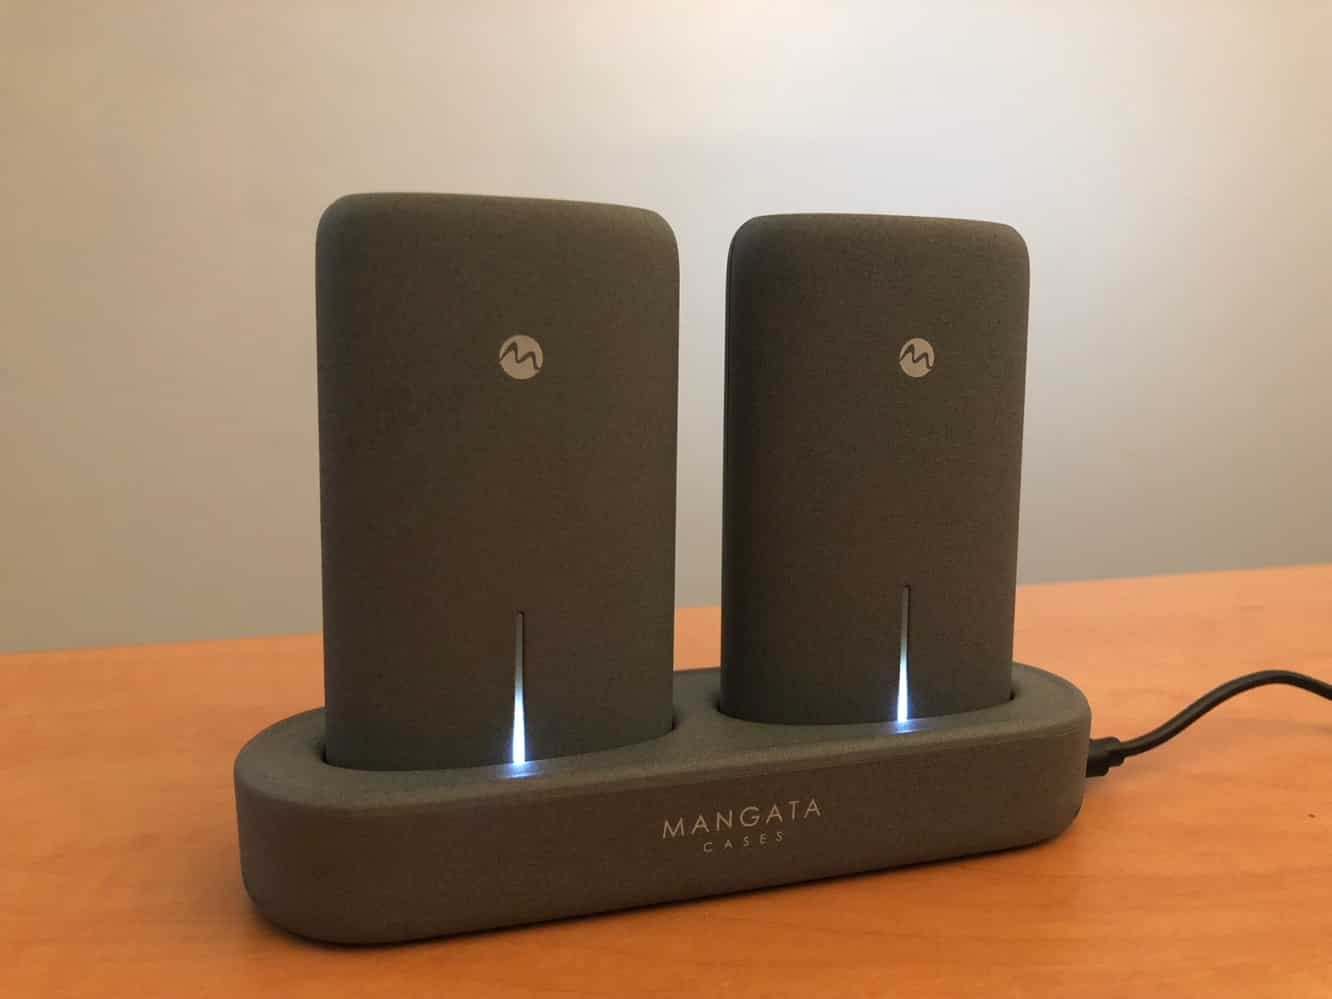 Review: Mangata Orbit Dual Power Bank Set with Wireless Charging Station